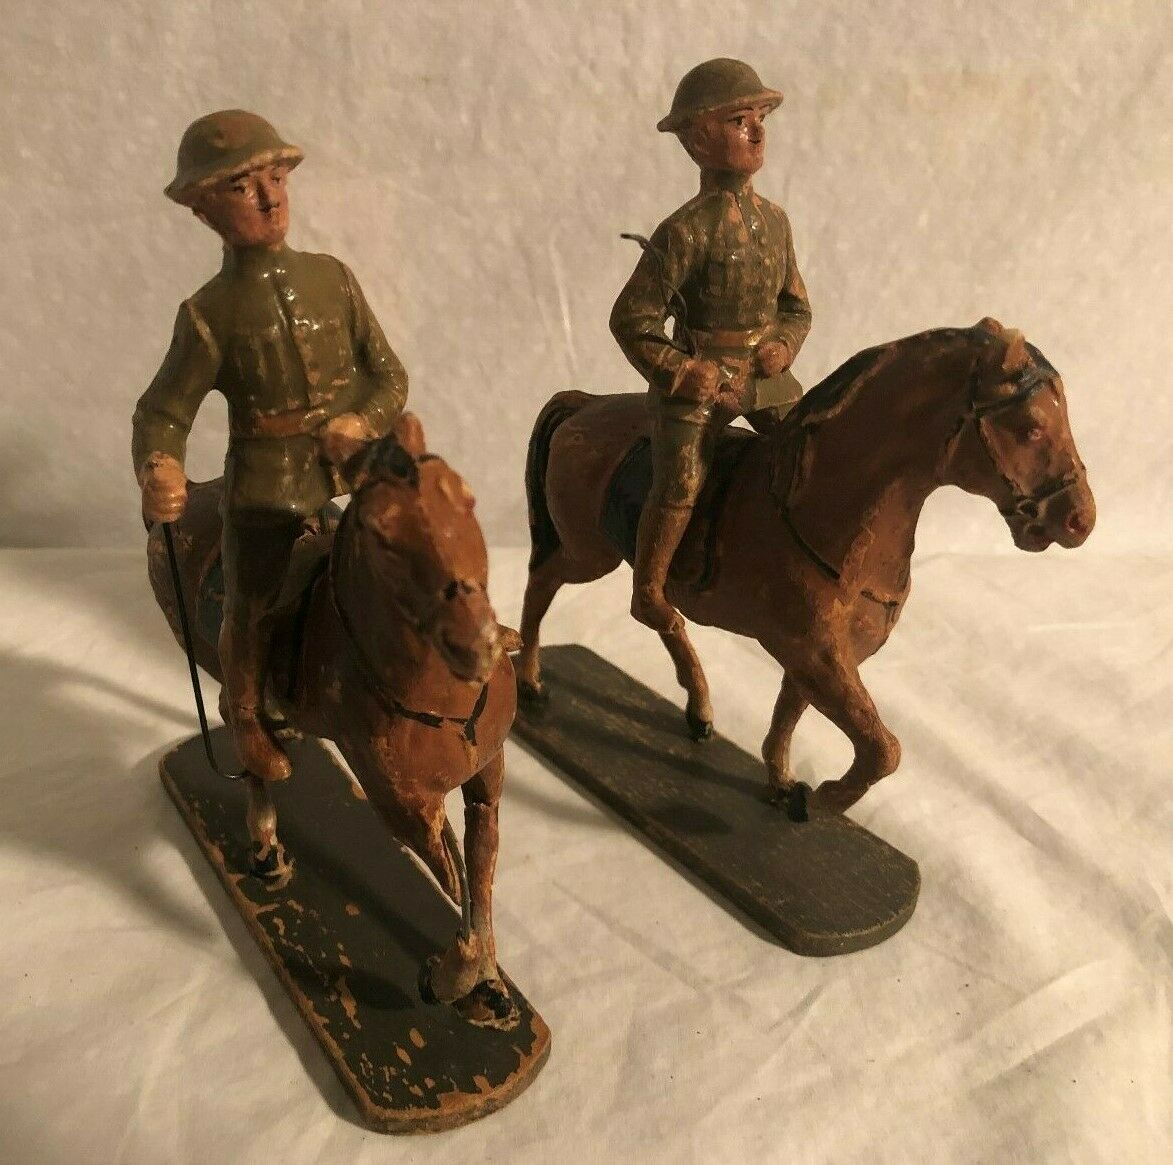 Elastolin Hausser Large Size 10cm Soldier Lot Horses Riders Germany Pre War